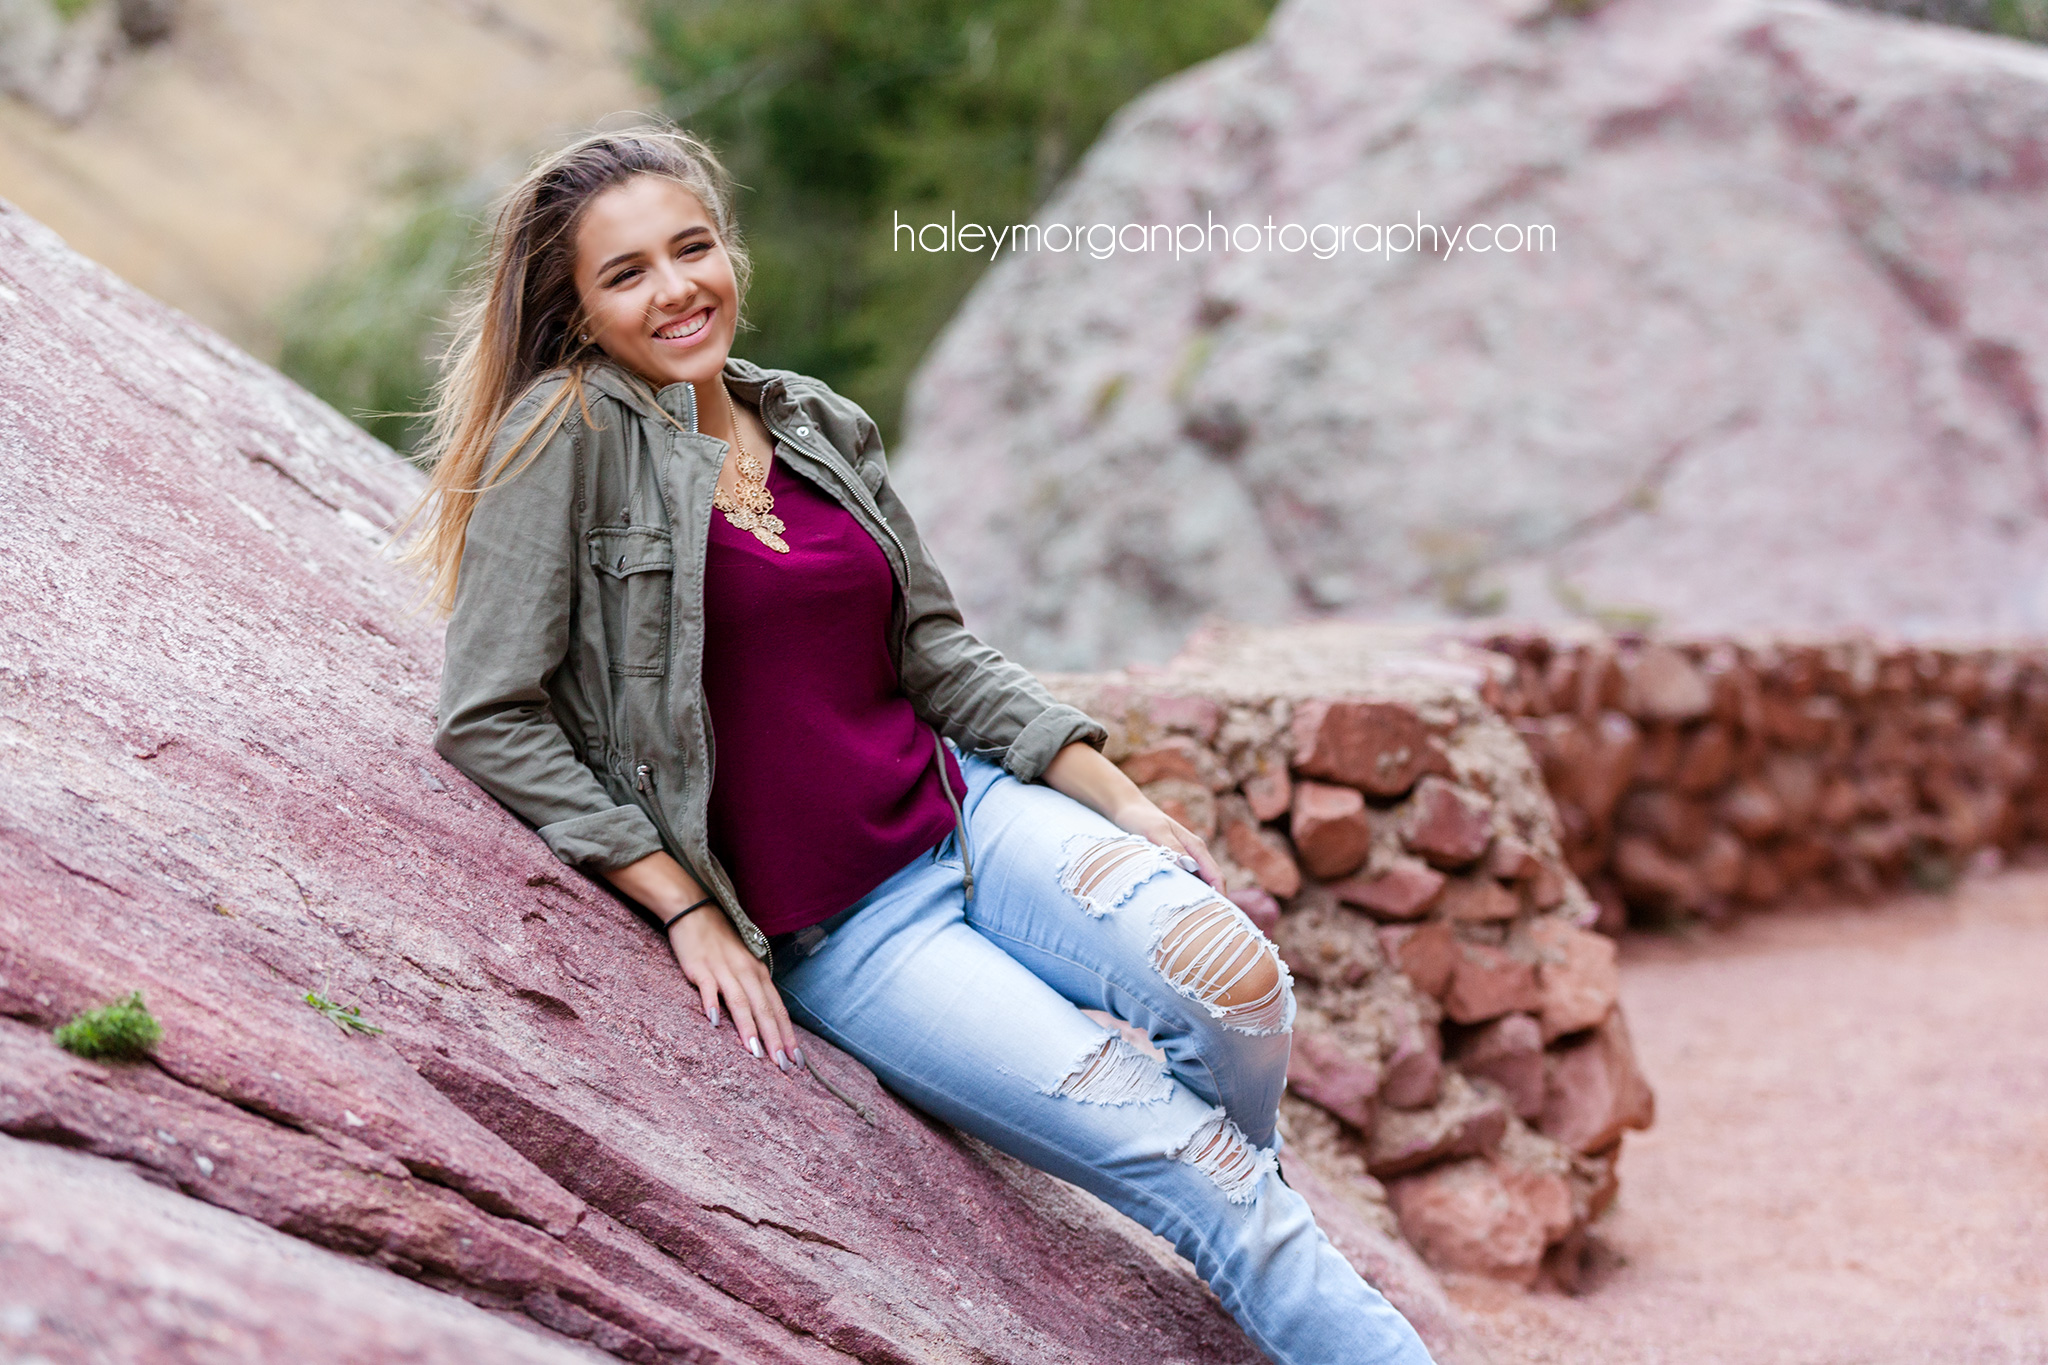 Denver Senior Photographer, Eldorado Canyon State Park, Alex Garcia, Denver Photographer, Denver Senior Photographer, Denver Photographers, Boulder Photographer, Boulder Senior Photographers, Haley Morgan Photographer